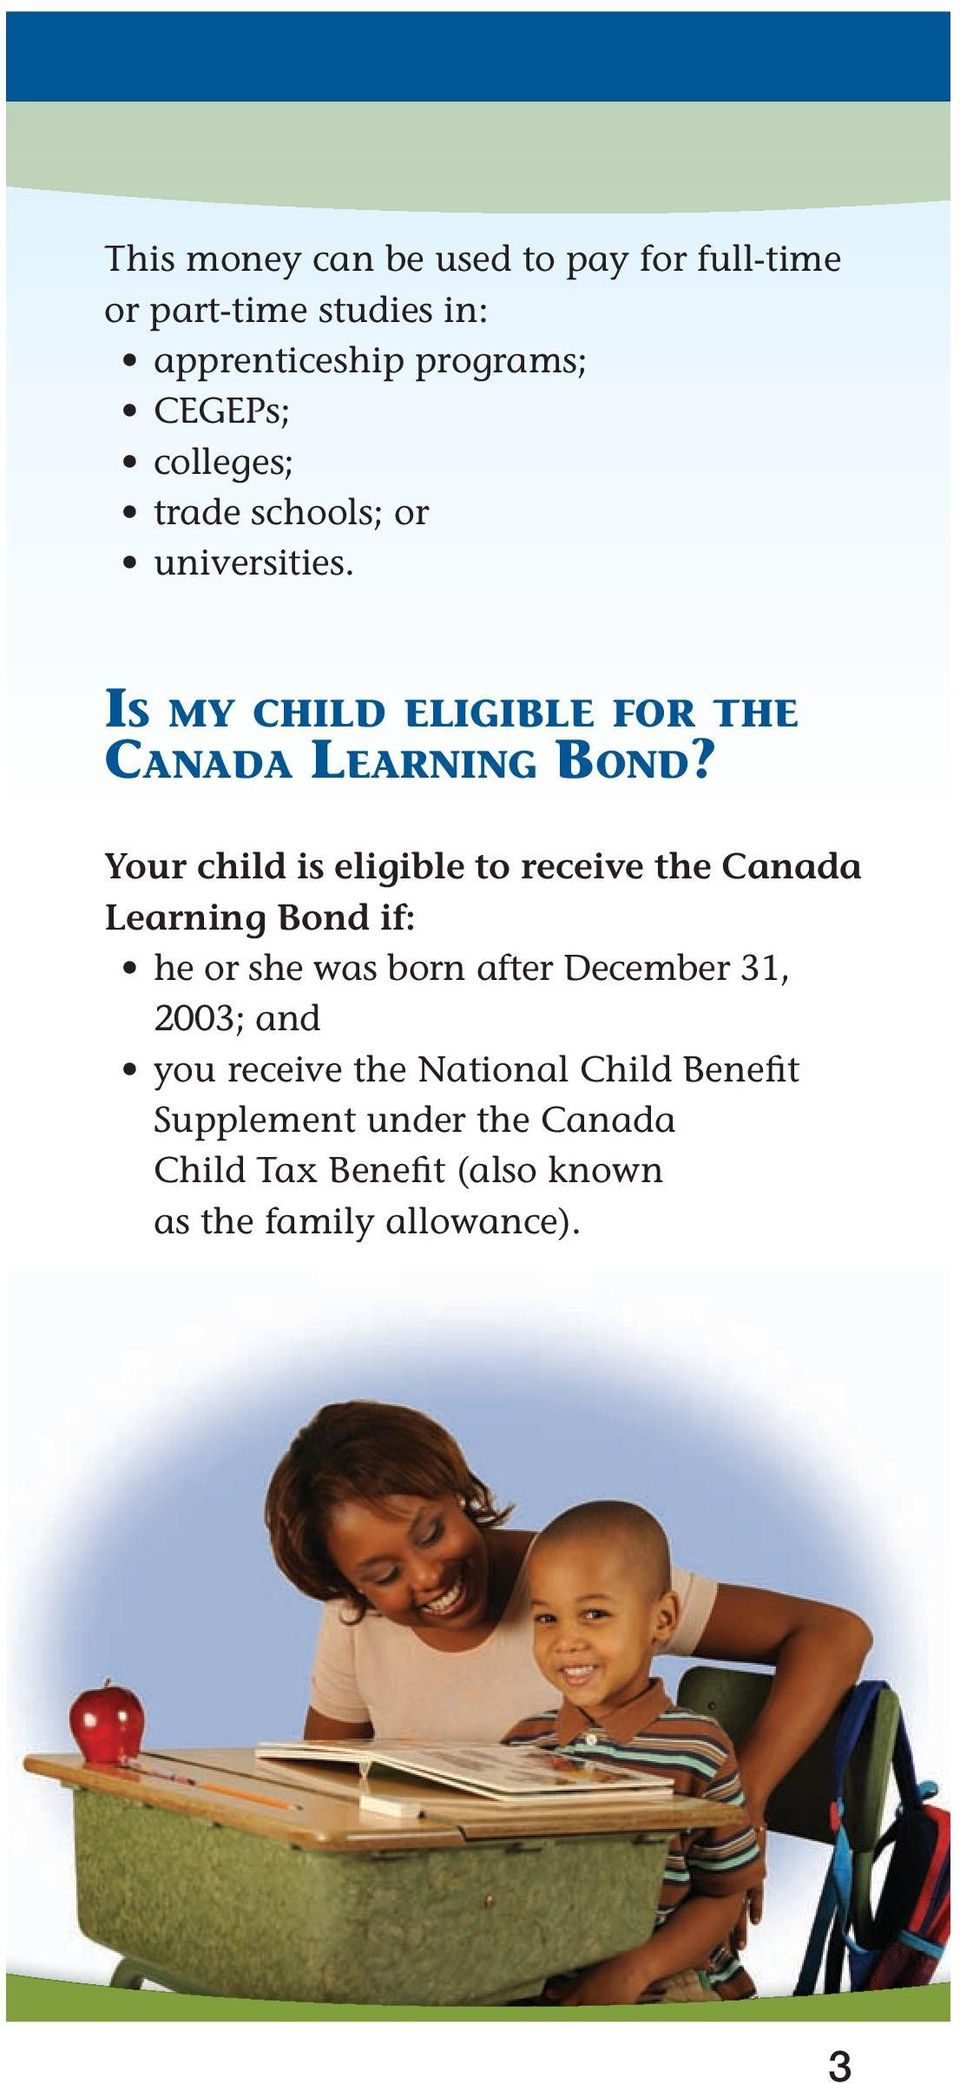 Your child is eligible to receive the Canada Learning Bond if: he or she was born after December 31, 2003;